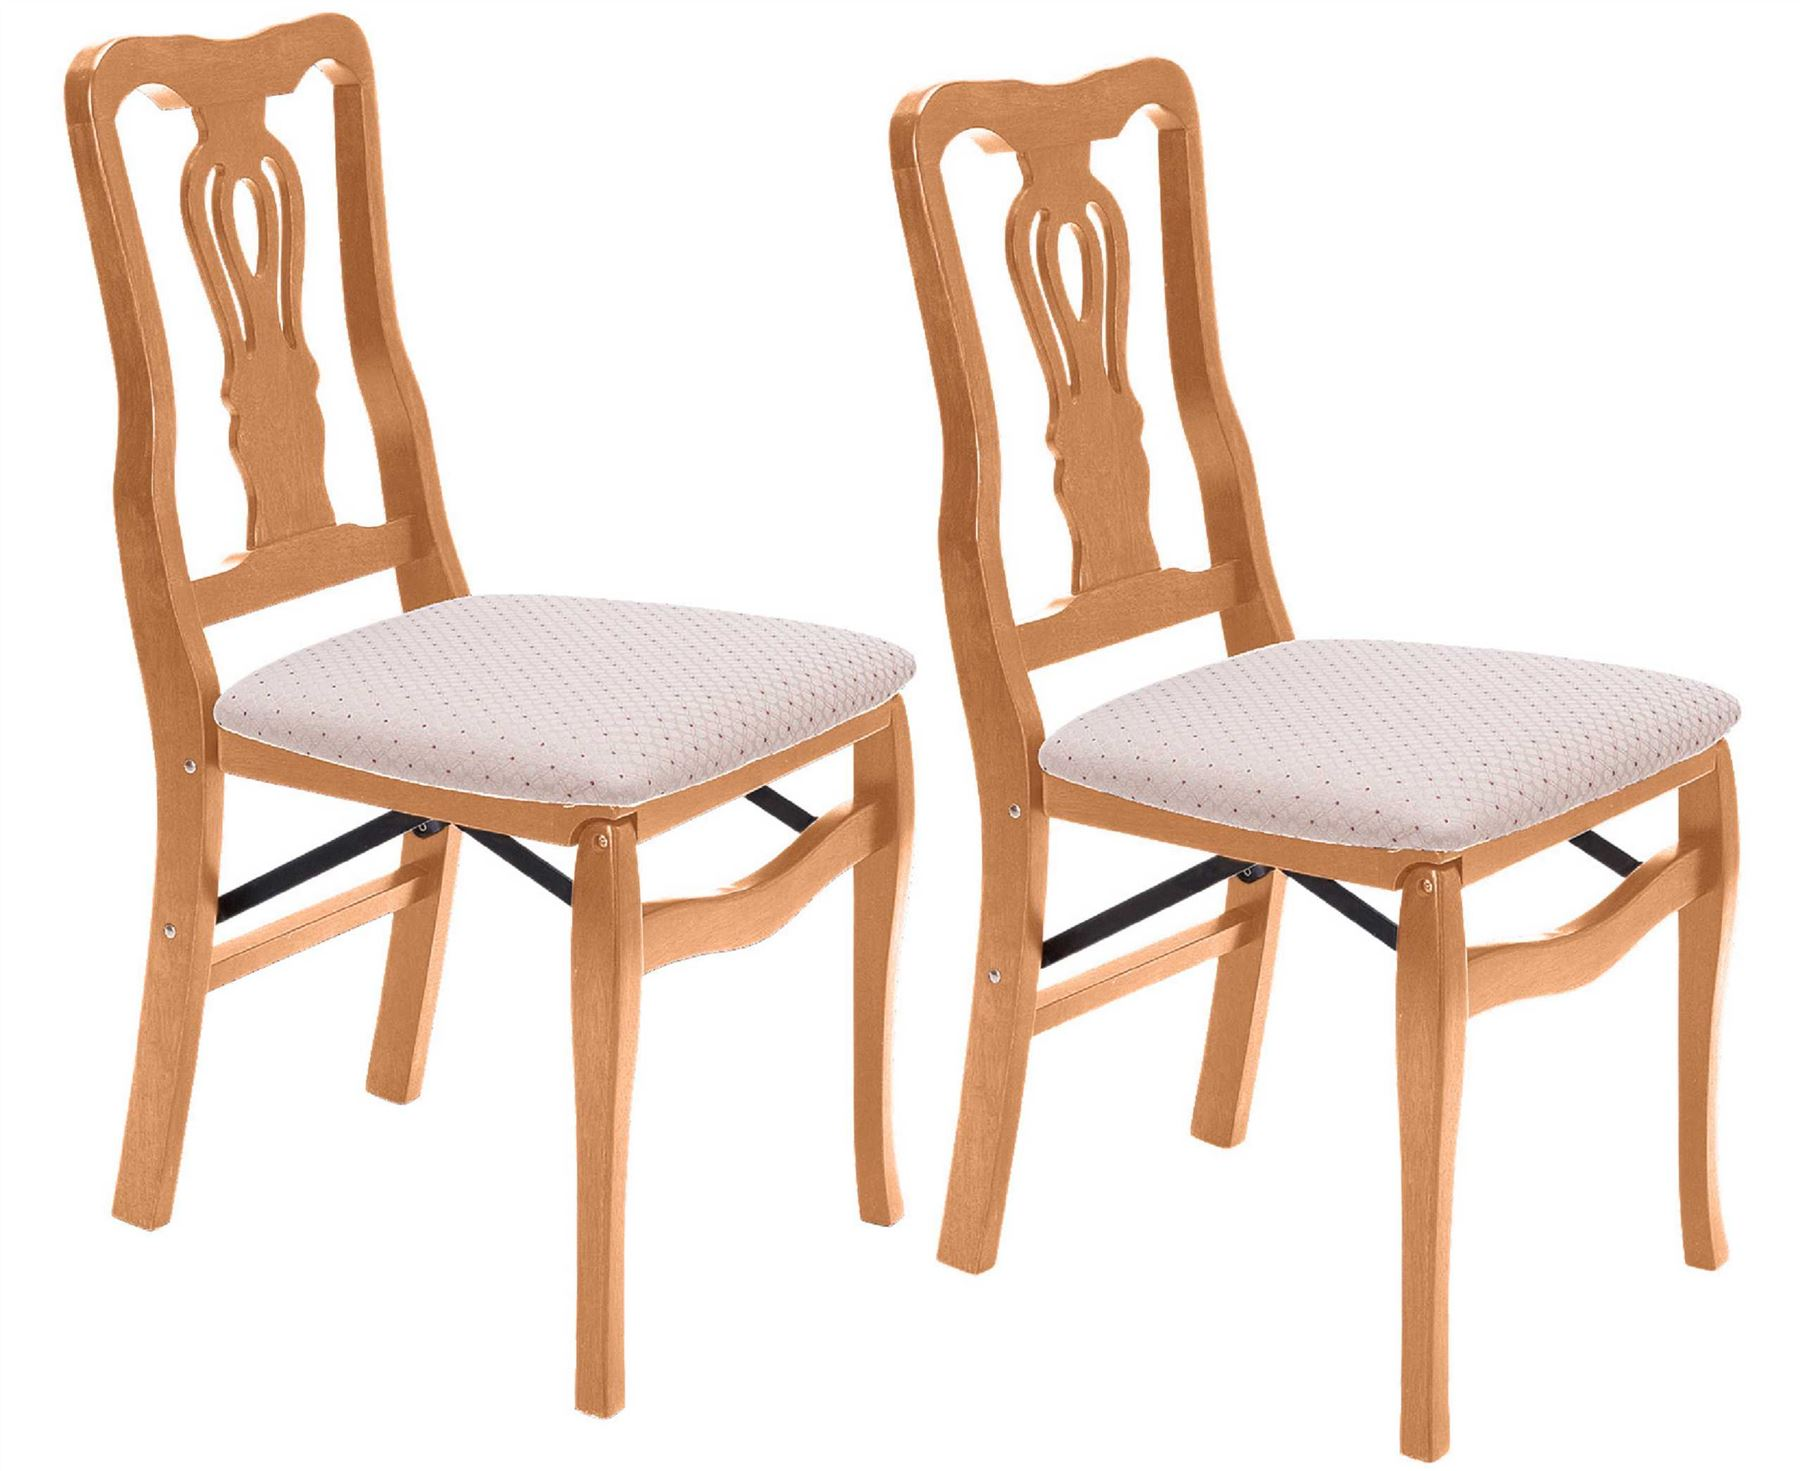 Chippendale Folding Dining Chairs Solid Hardwood Cushioned Seat